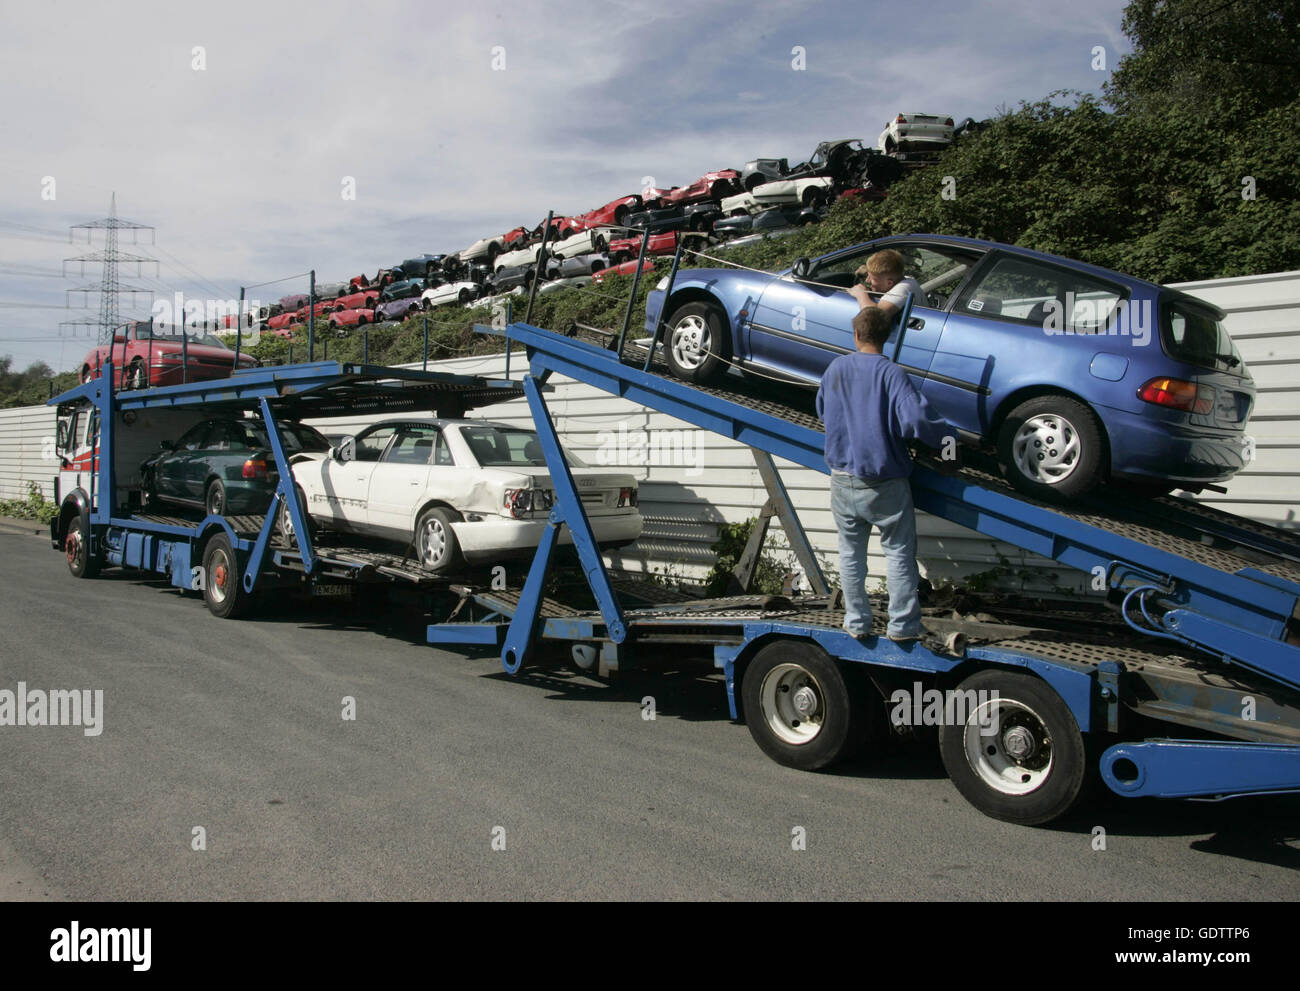 Loading of used, accident damaged vehicles on a car carrier ...